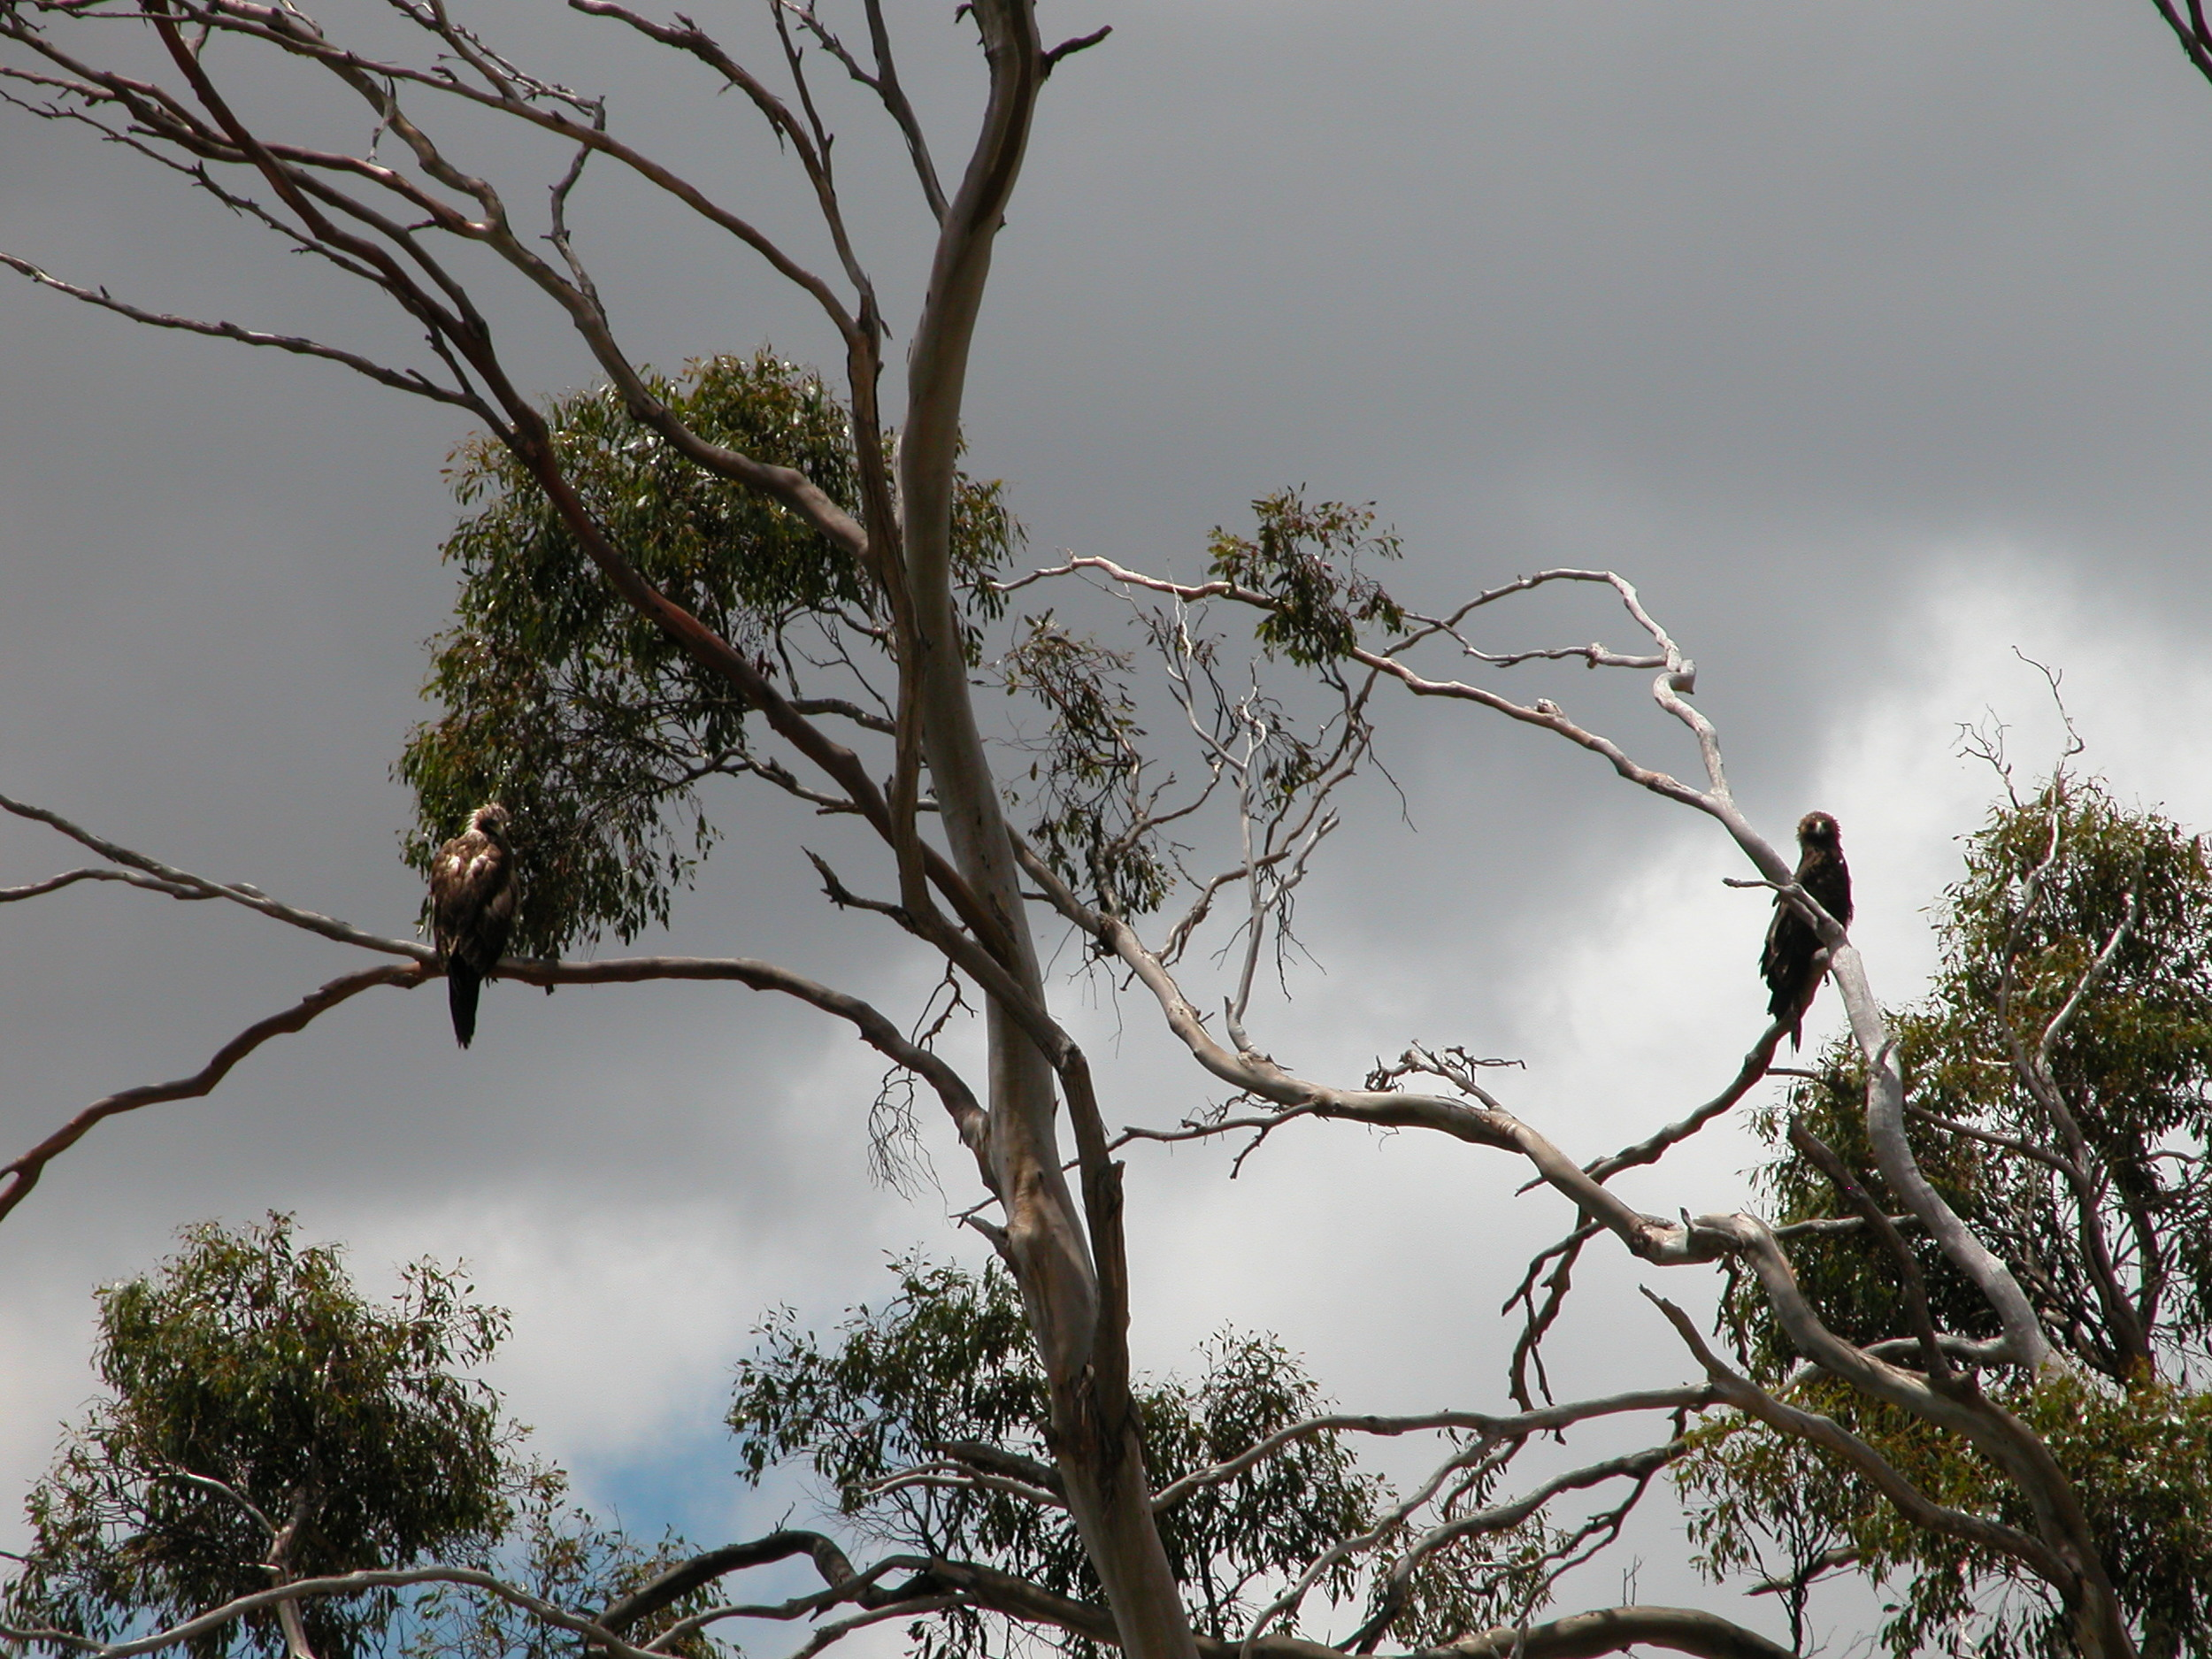 On the same day, about the same time, these two wedge-tailed eagles watched us for nearly an hour, just overhead.